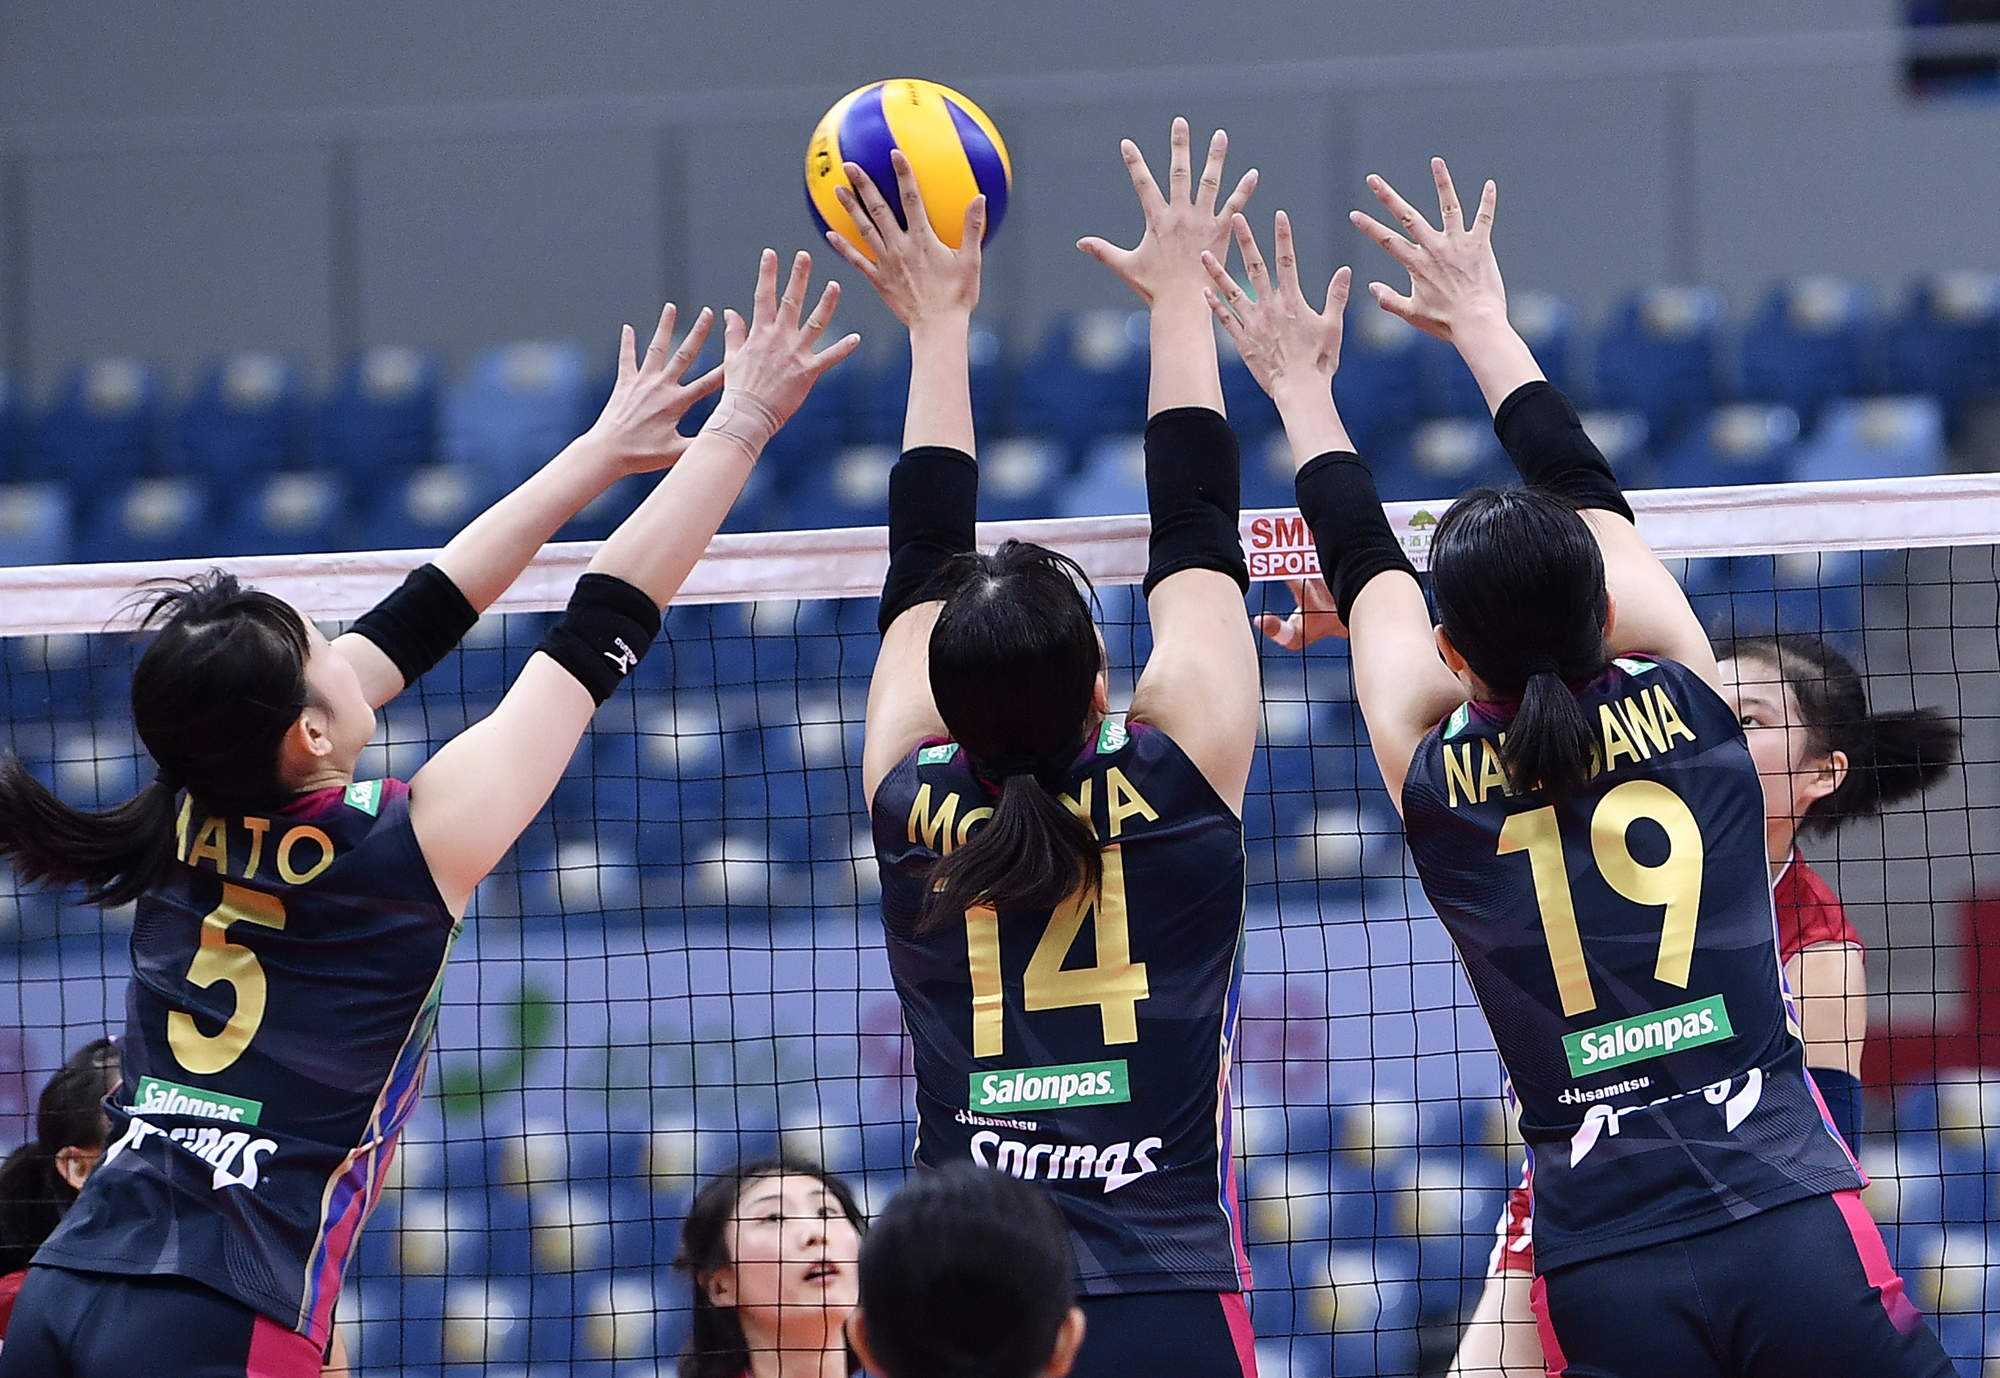 STRAIGHT-SET WINS PREVAIL ON DAY 2 OF ASIAN WOMEN'S CLUB CHAMPIONSHIP